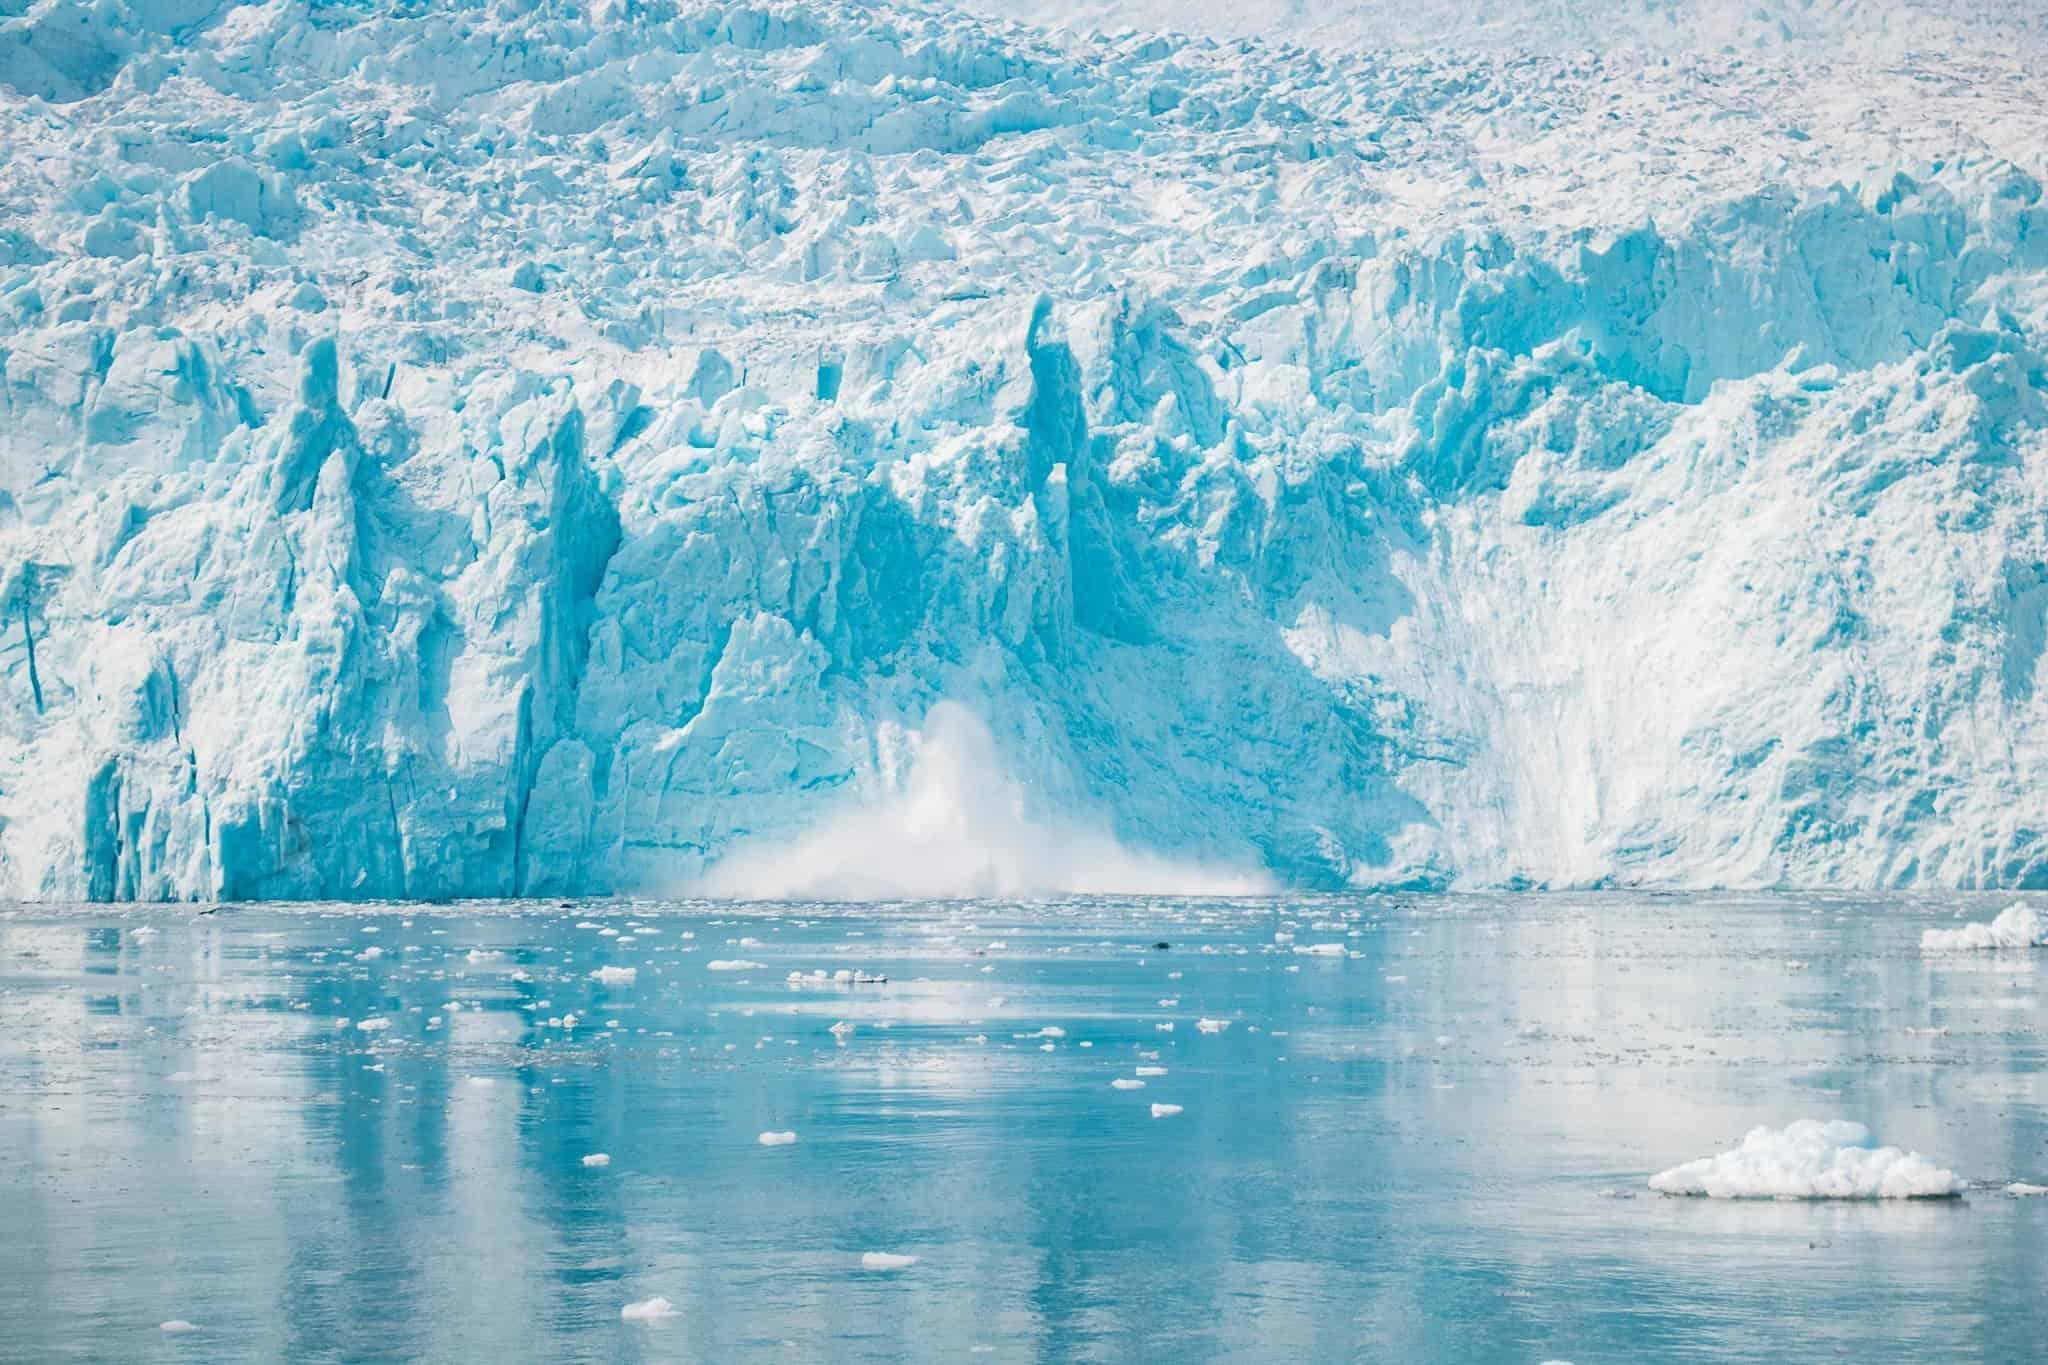 Aialik Glacier on Pursuit Collection Cruise Kenai Fjord Alaska - The Next Trip